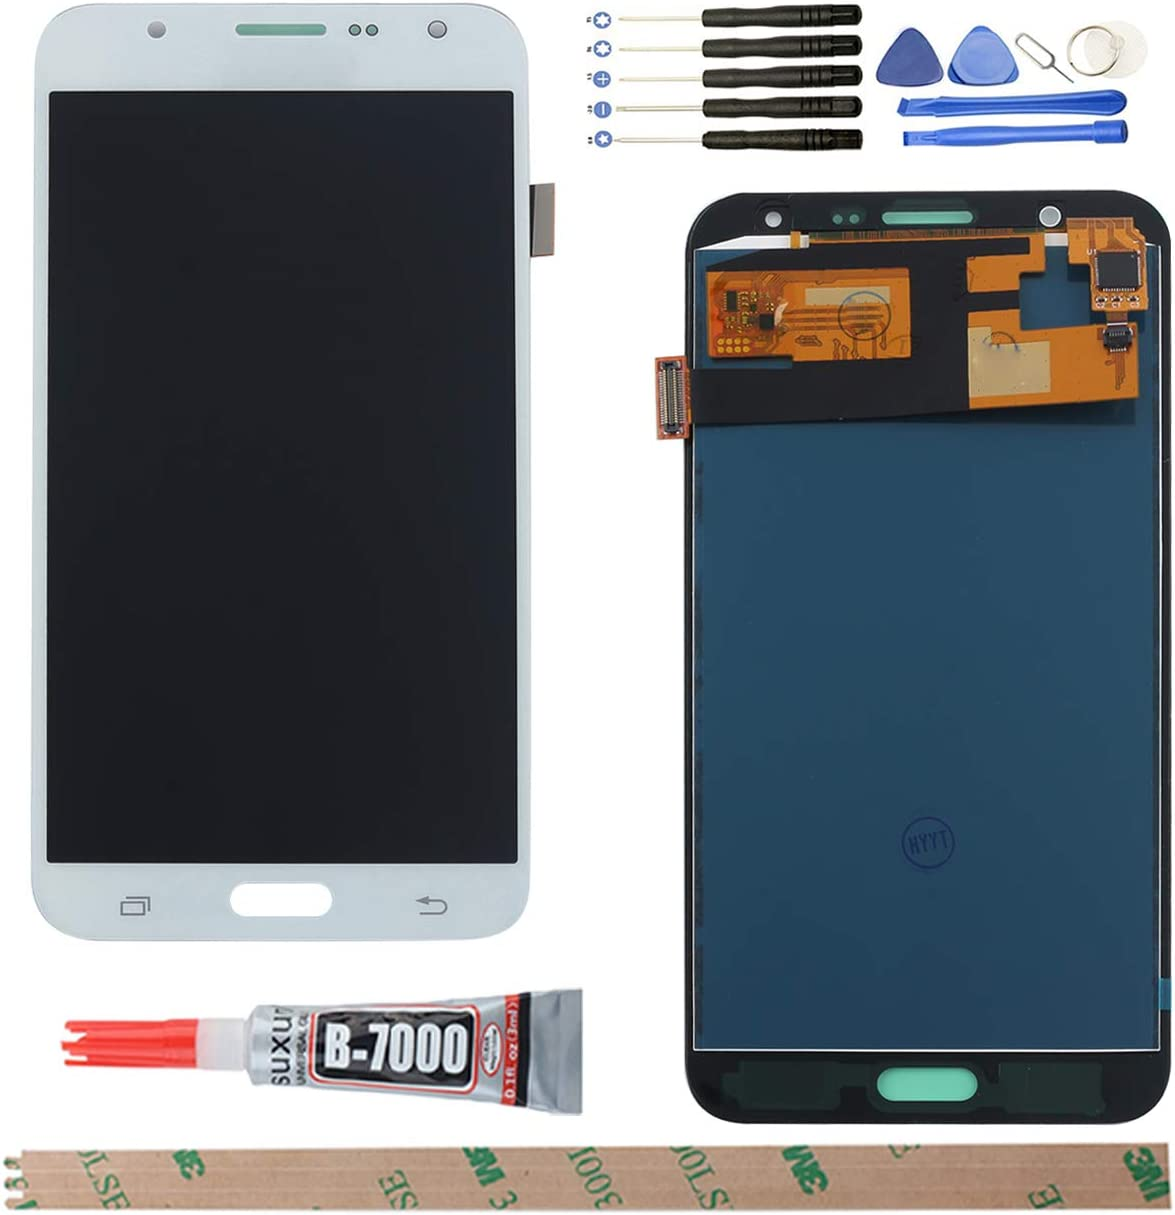 YHX-US Replacement for Samsung Galaxy J7 J700F J700F/DS J700H/DS J700M J700M/DS J700T J700P (2015) LCD Display Screen Touch Digitizer + A Set of Tools (White)